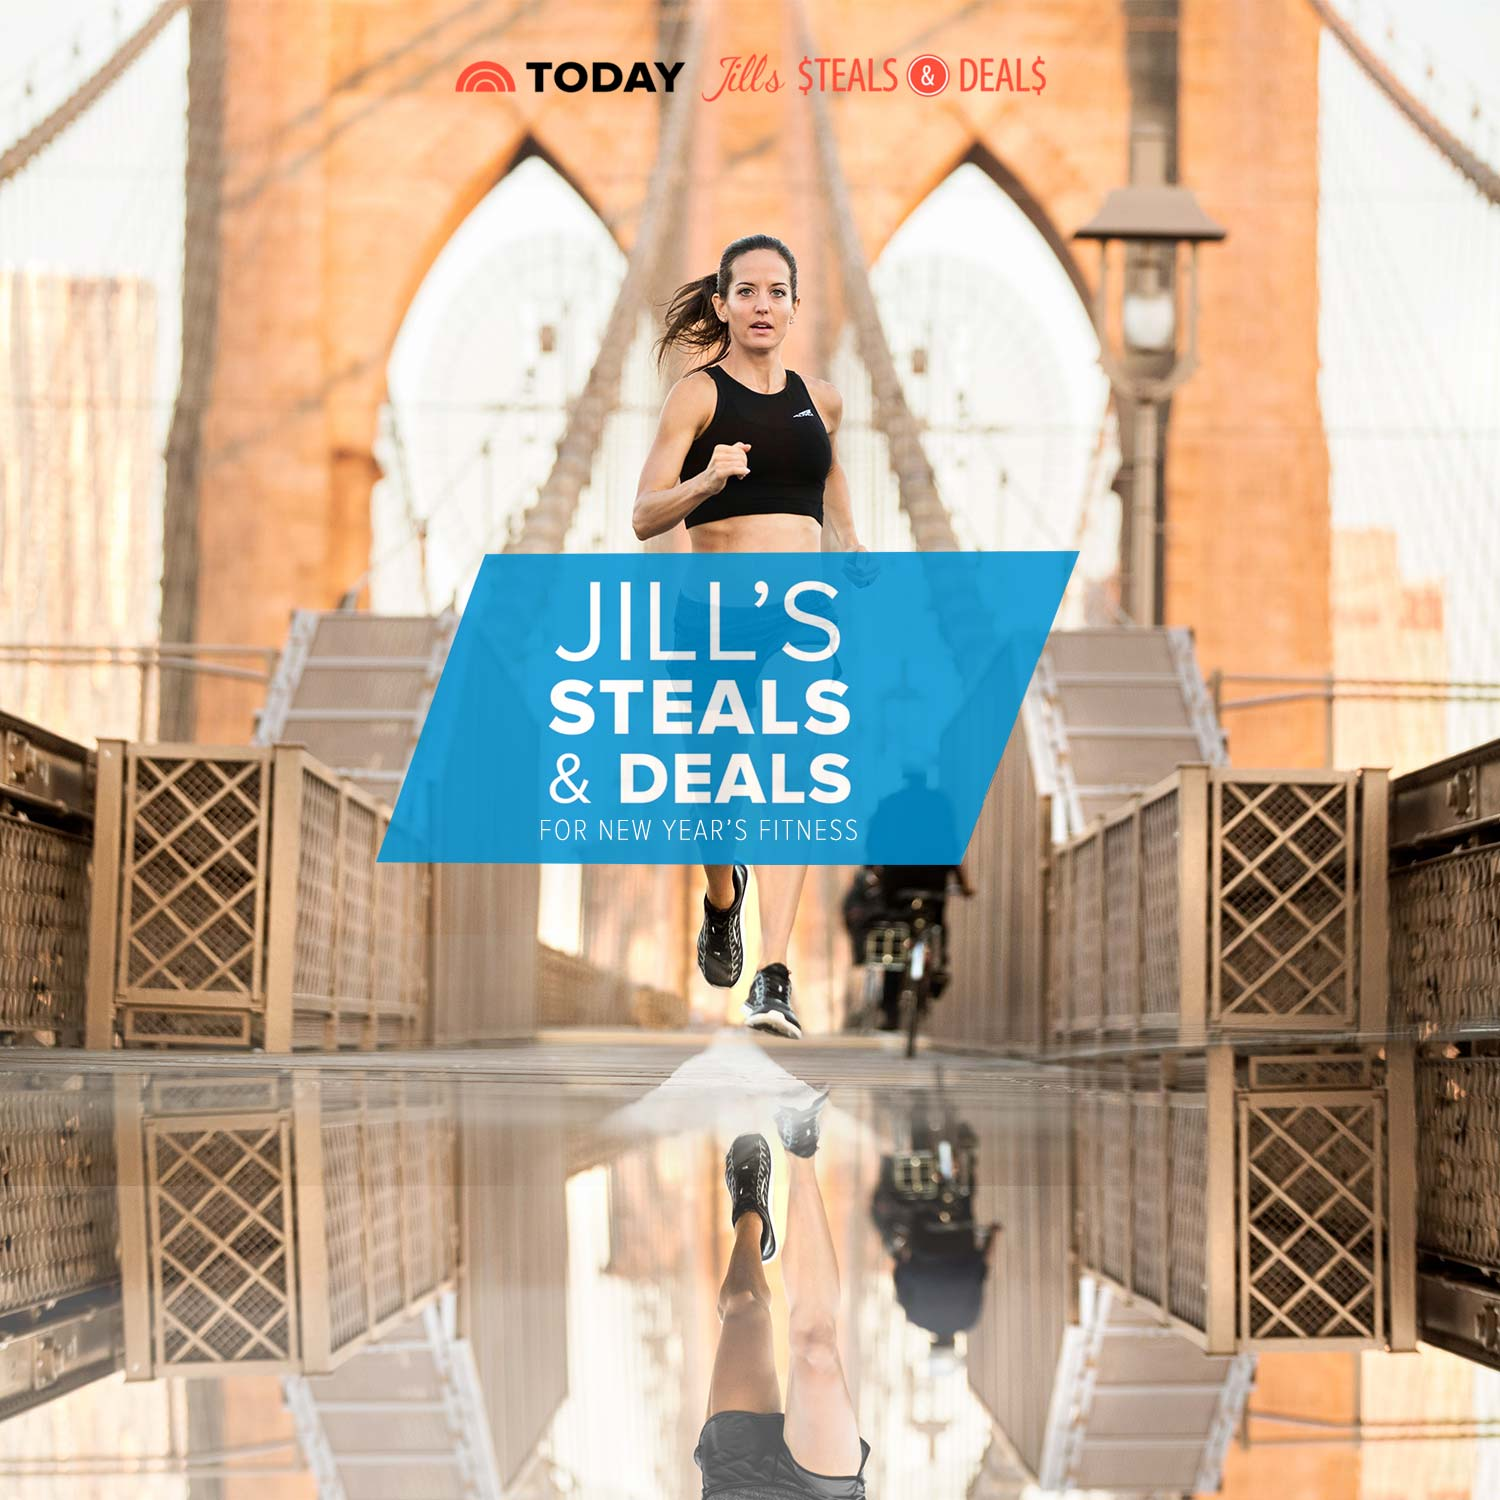 Jill's Steals and Deals contains great deals offered by retailers to TODAY viewers.